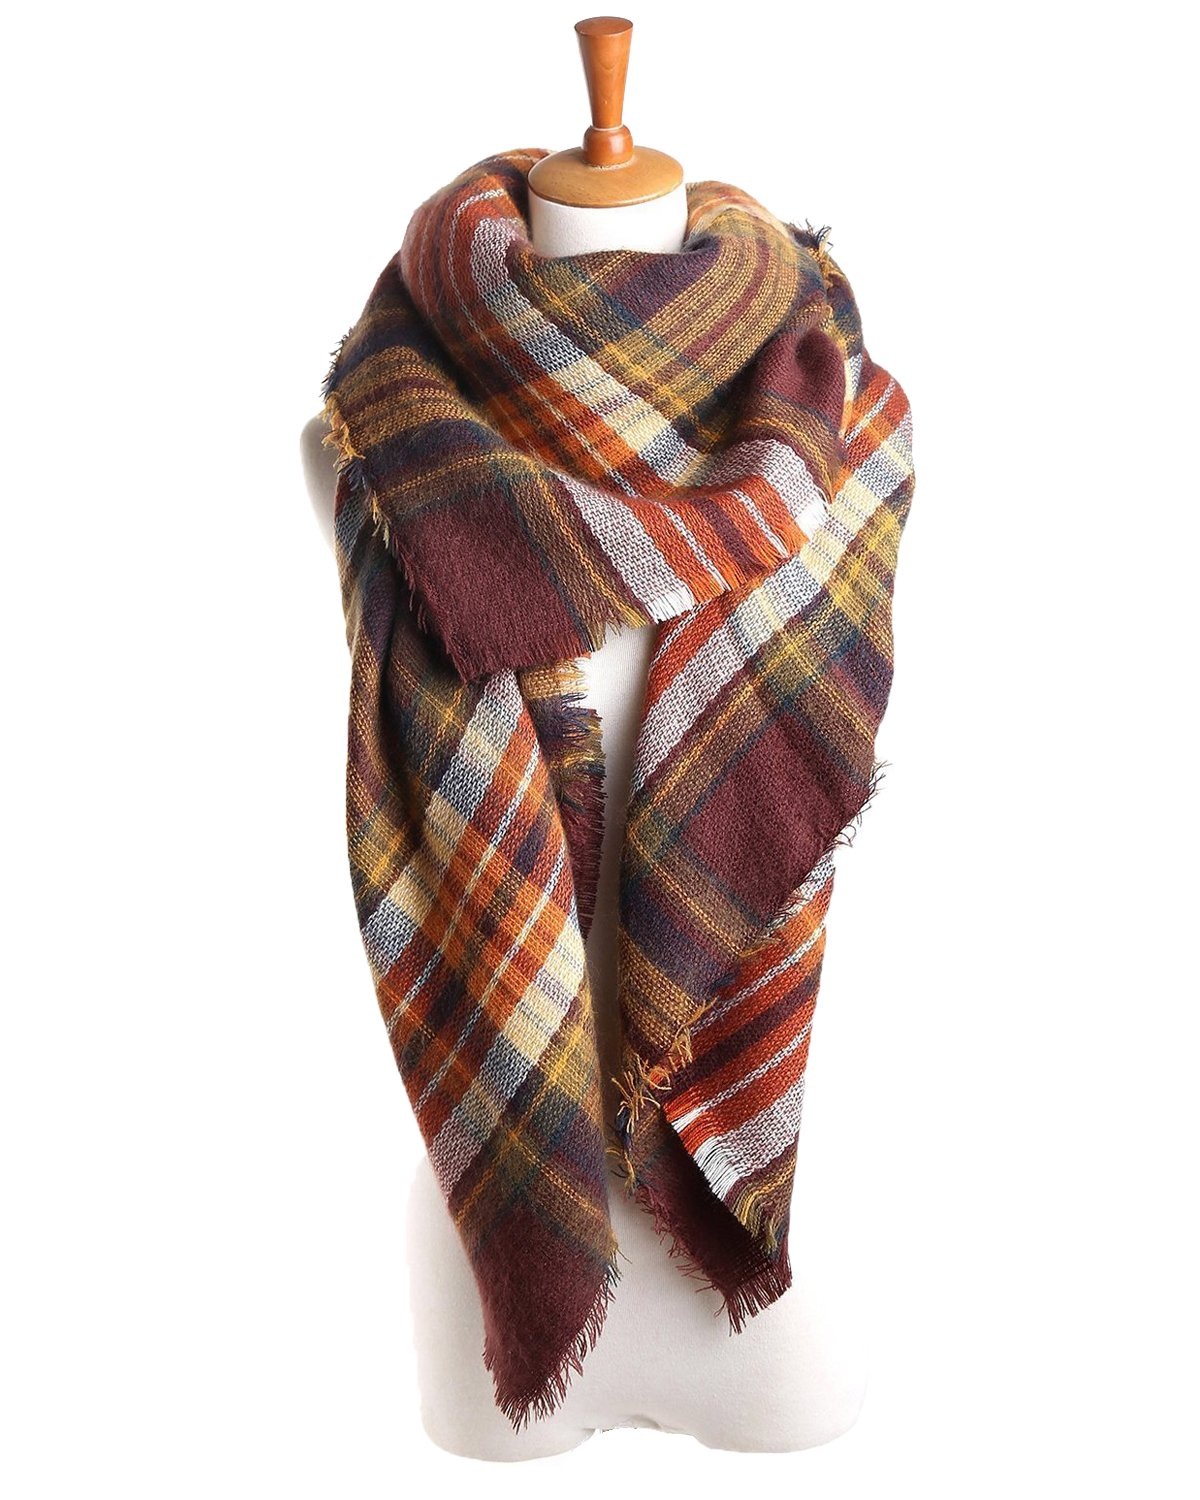 Spring fever Tartan Blanket Scarf Wrap Shawl Neck Stole Plaid Checked Pashmina A10 SUDS0114A13FSSF